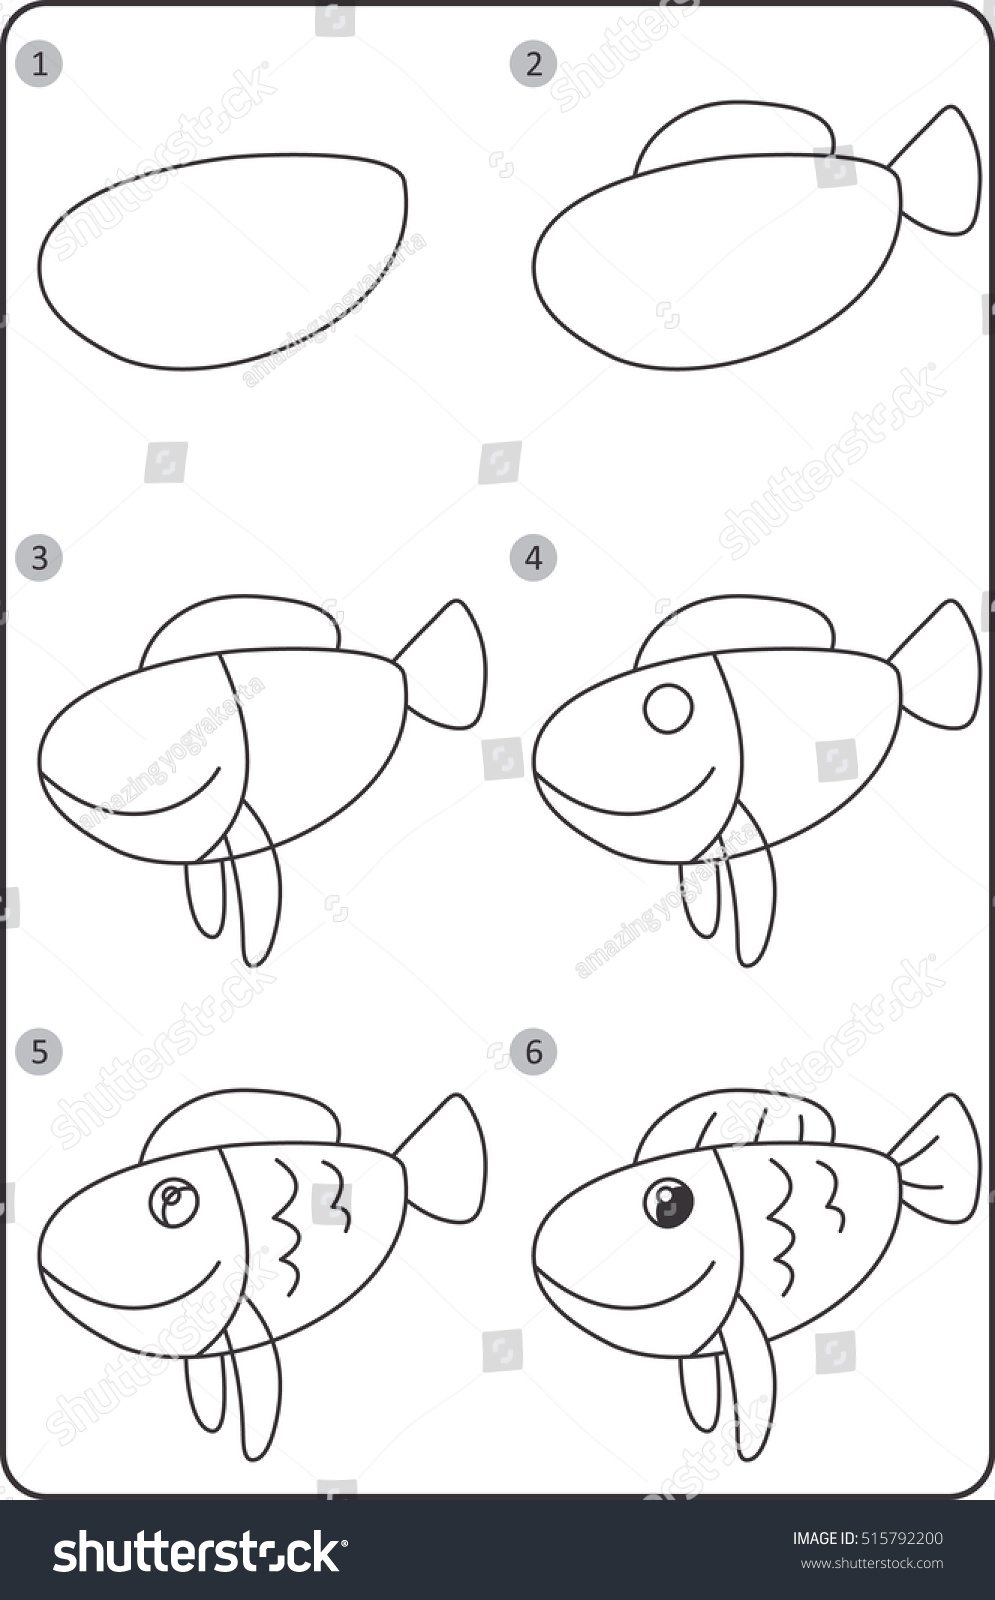 Step By Step Drawing Fish Easy Stock Vector Royalty Free 515792200